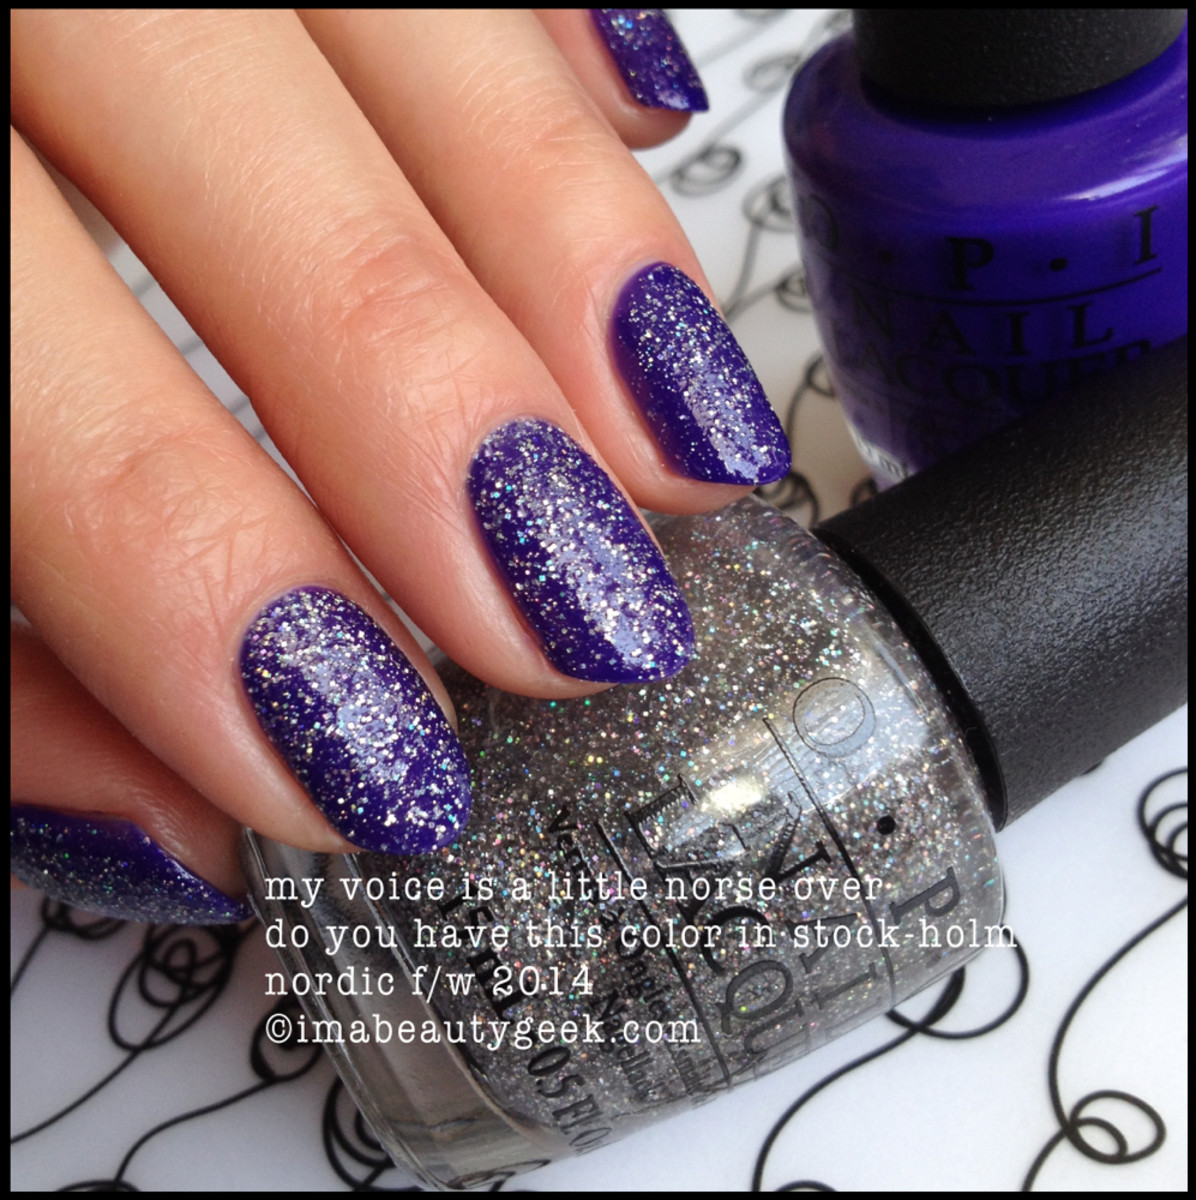 opi nordic my voice is a little norse over opi do you have this color in stock-holm?